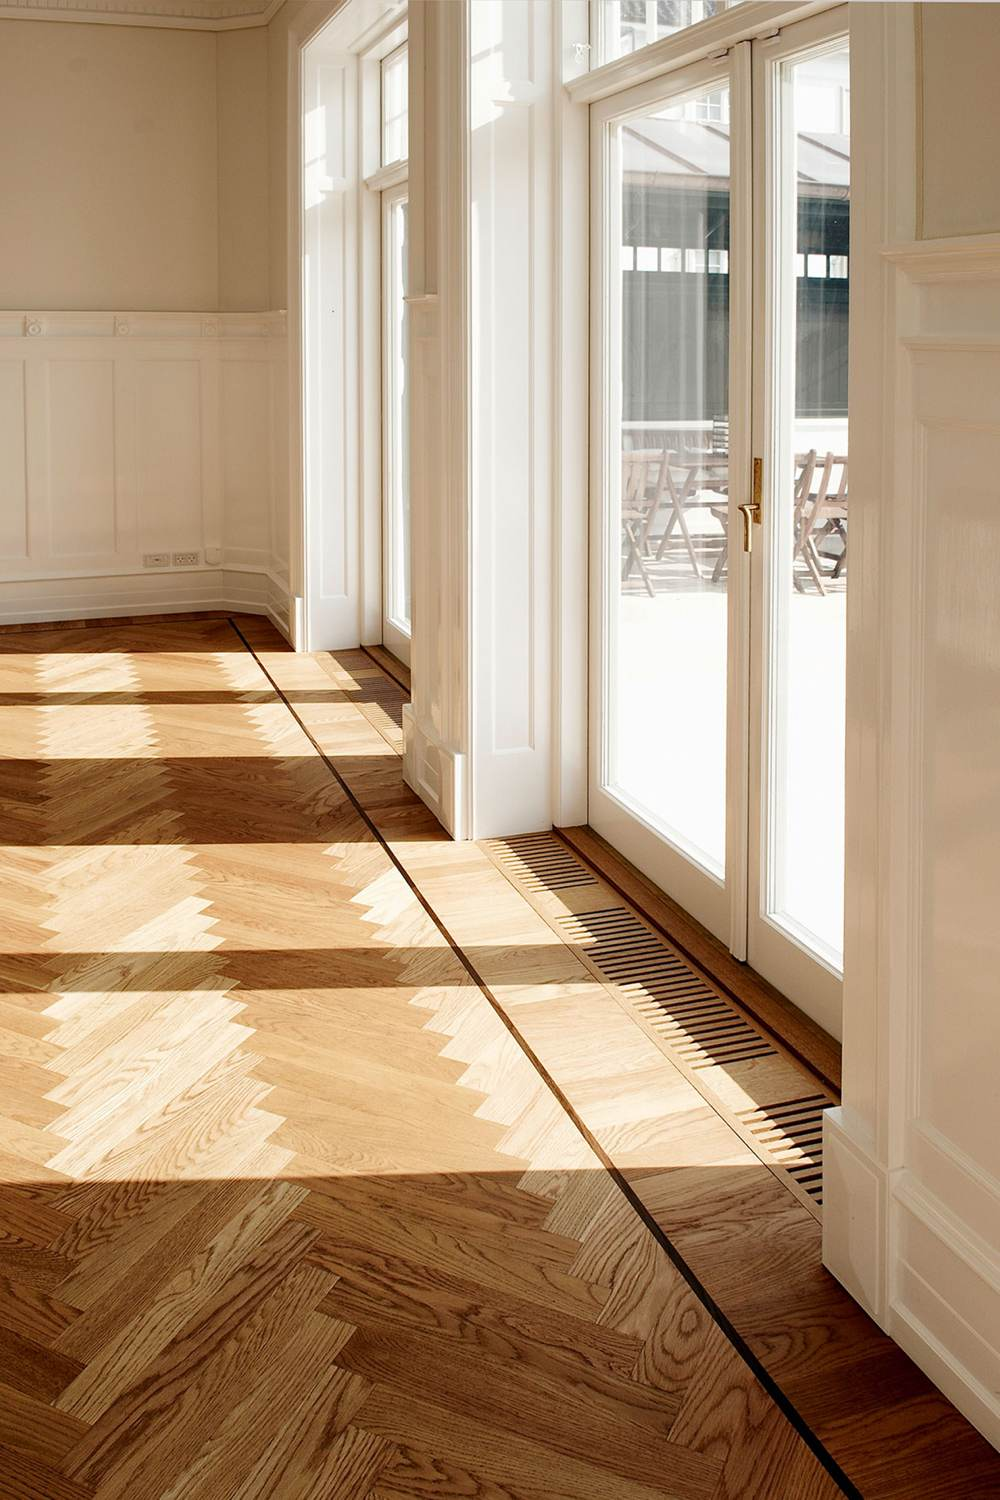 legio_projects_hellerup_windows_floor.jpg